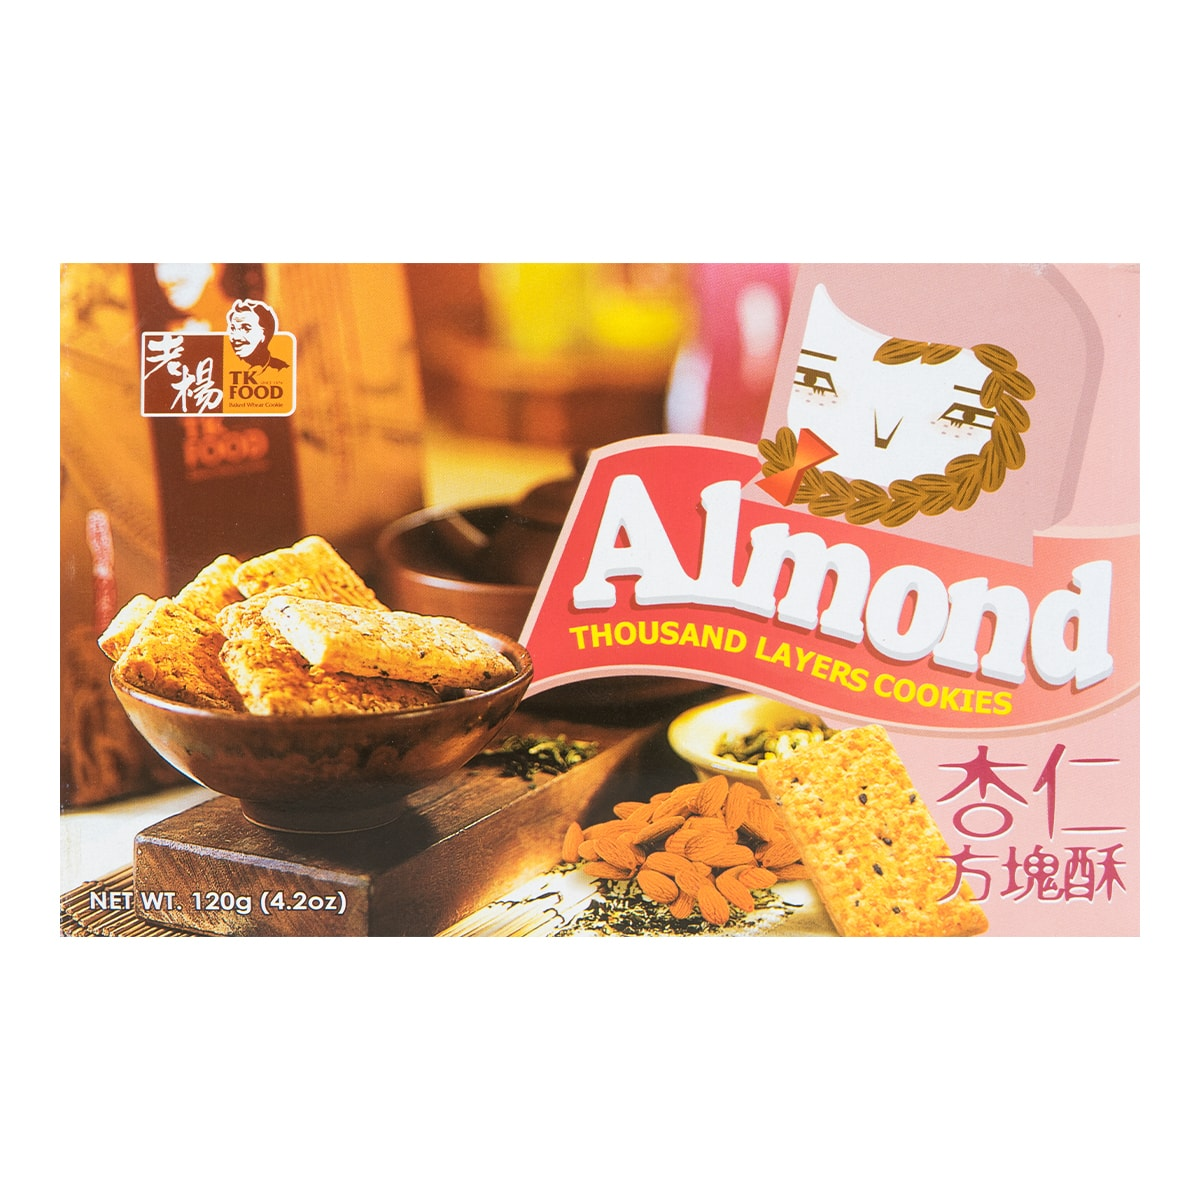 TK FOOD Almond Thousand Layers Cookies 120g